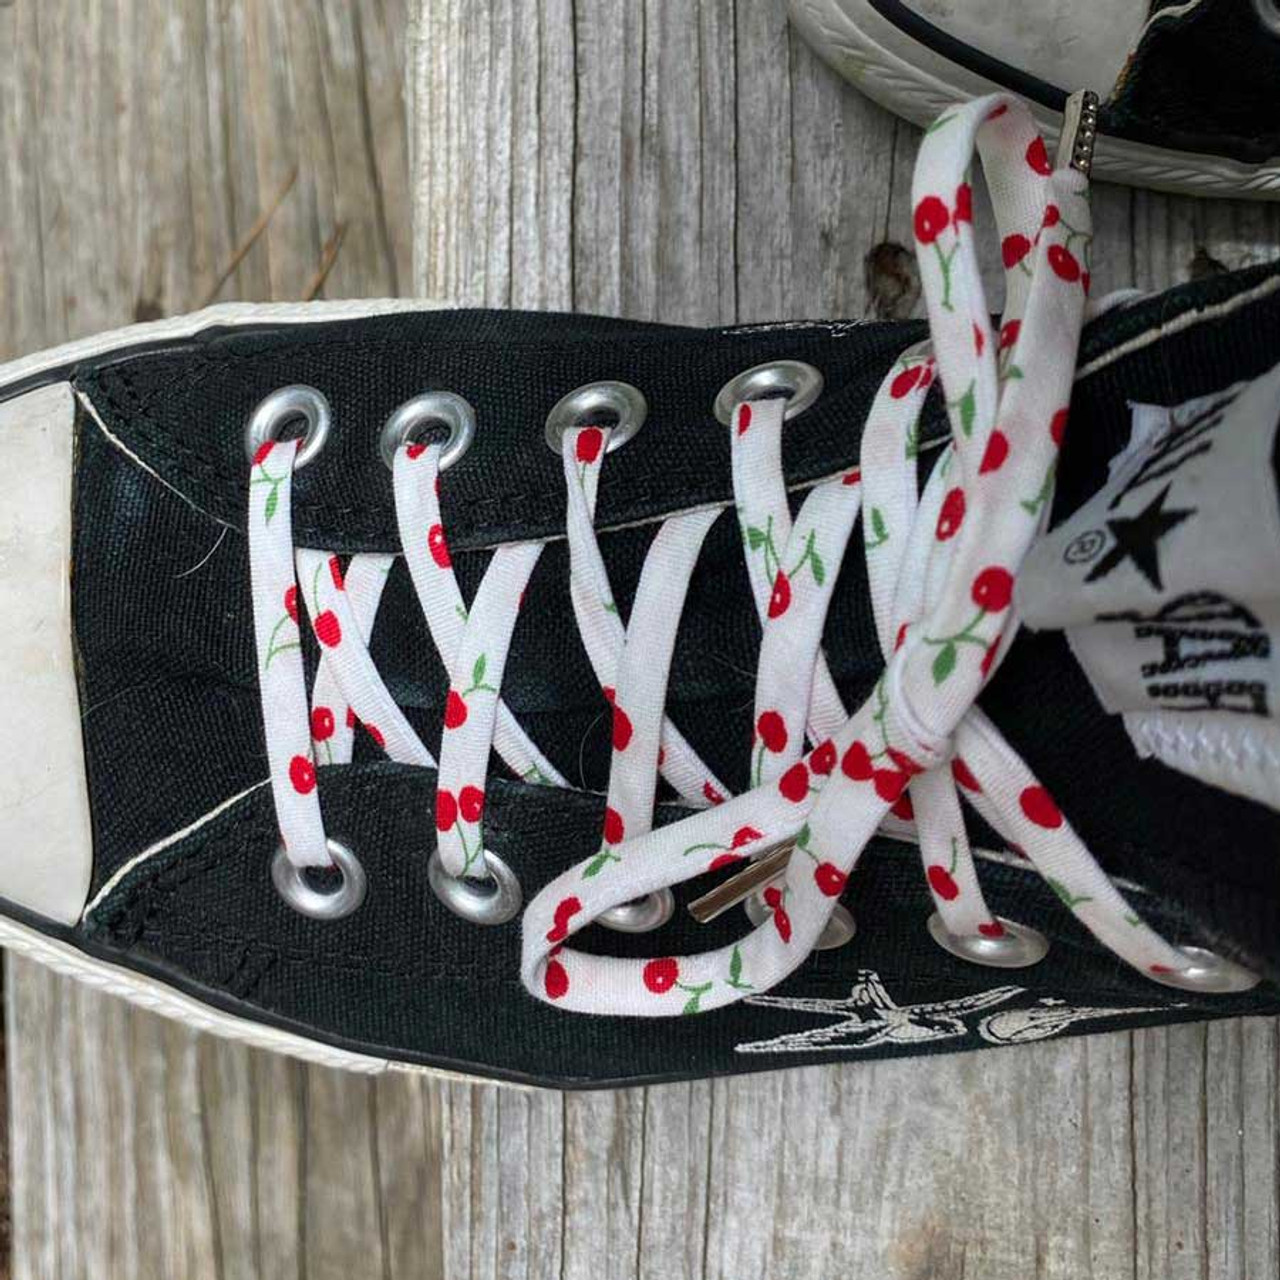 Shoelaces with Cherries